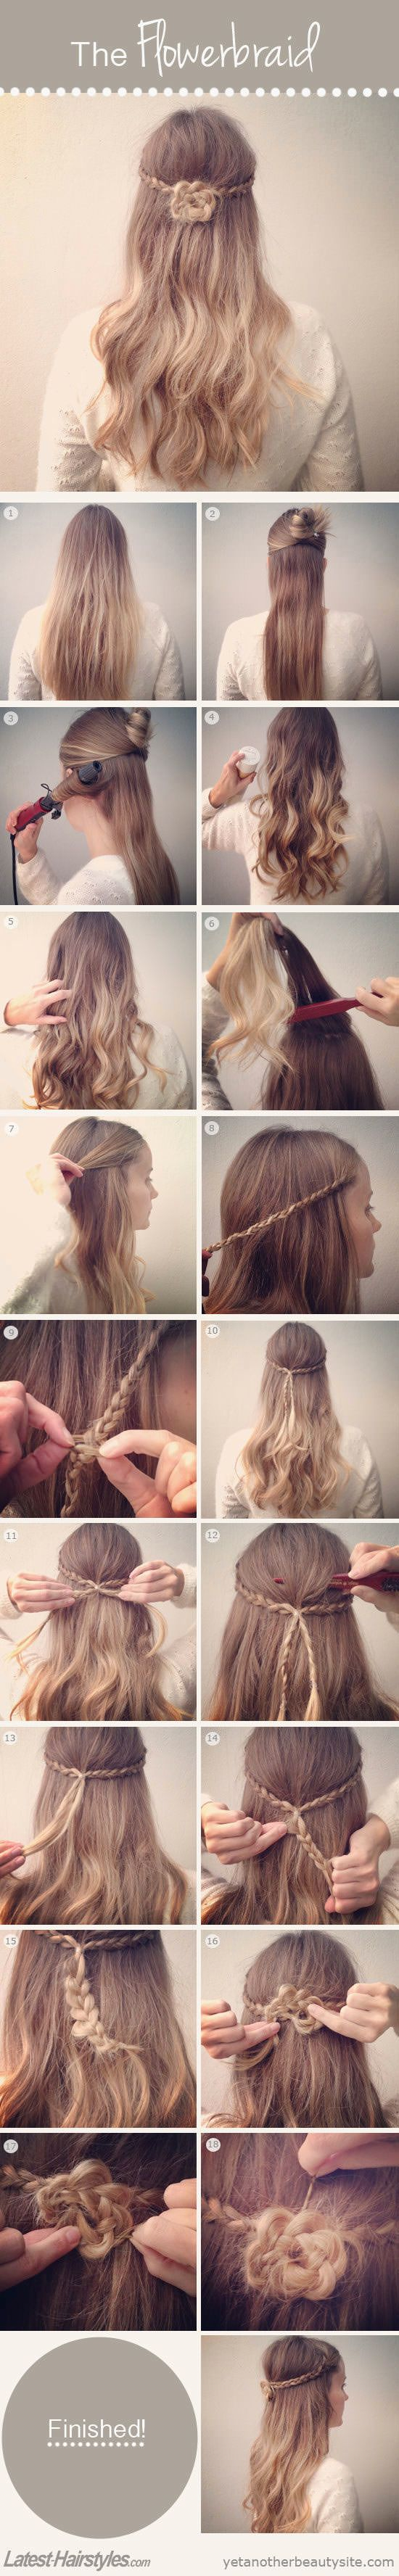 189 best Hairs images on Pinterest